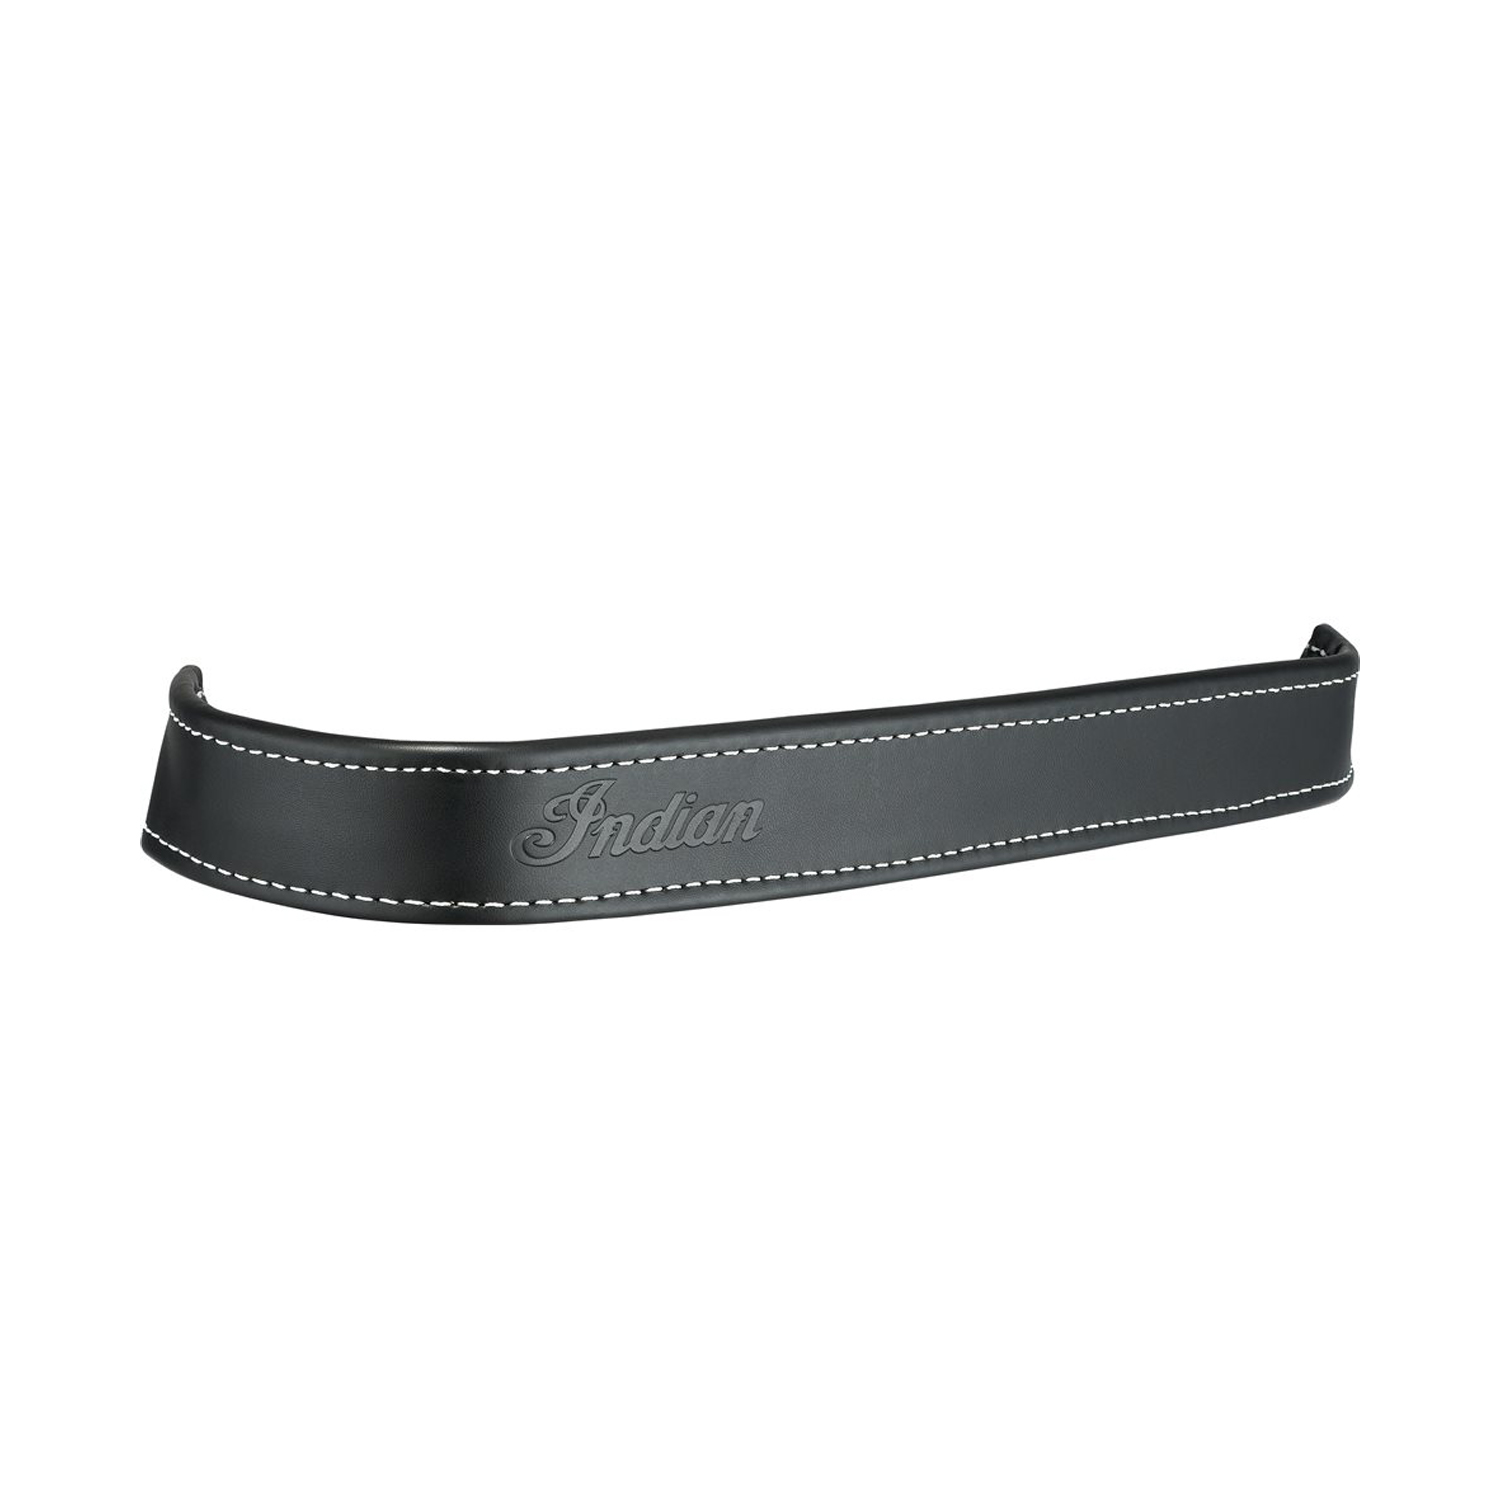 Genuine Leather Floorboard Trim - Black